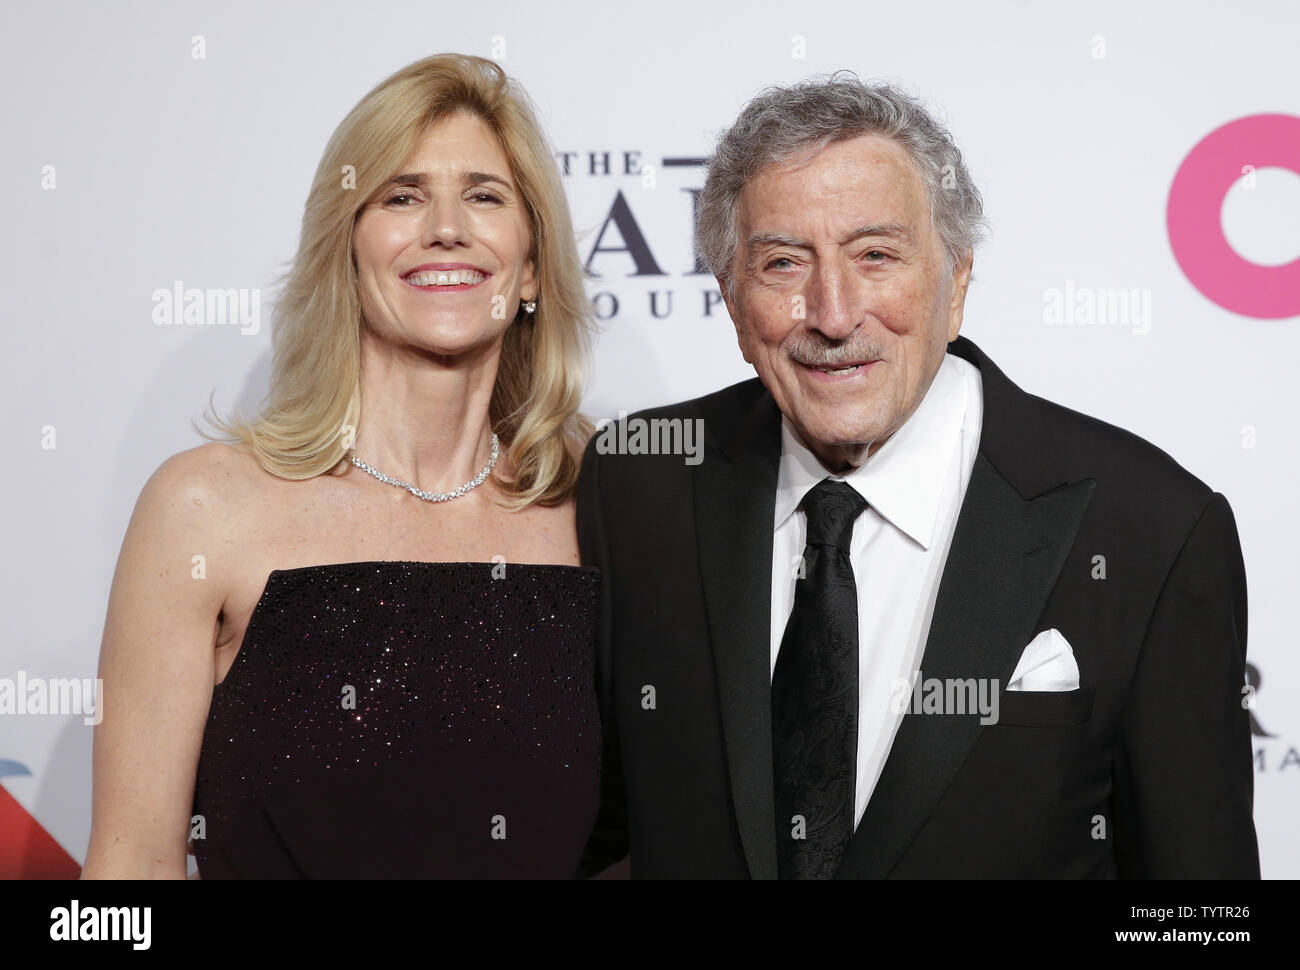 Susan Crow and Tony Bennett arrives on the red carpet at the Elton John AIDS Foundation's 17th Annual An Enduring Vision Benefit at Cipriani 42nd Street on November 5, 2018 in New York City.       Photo by John Angelillo/UPI - Stock Image